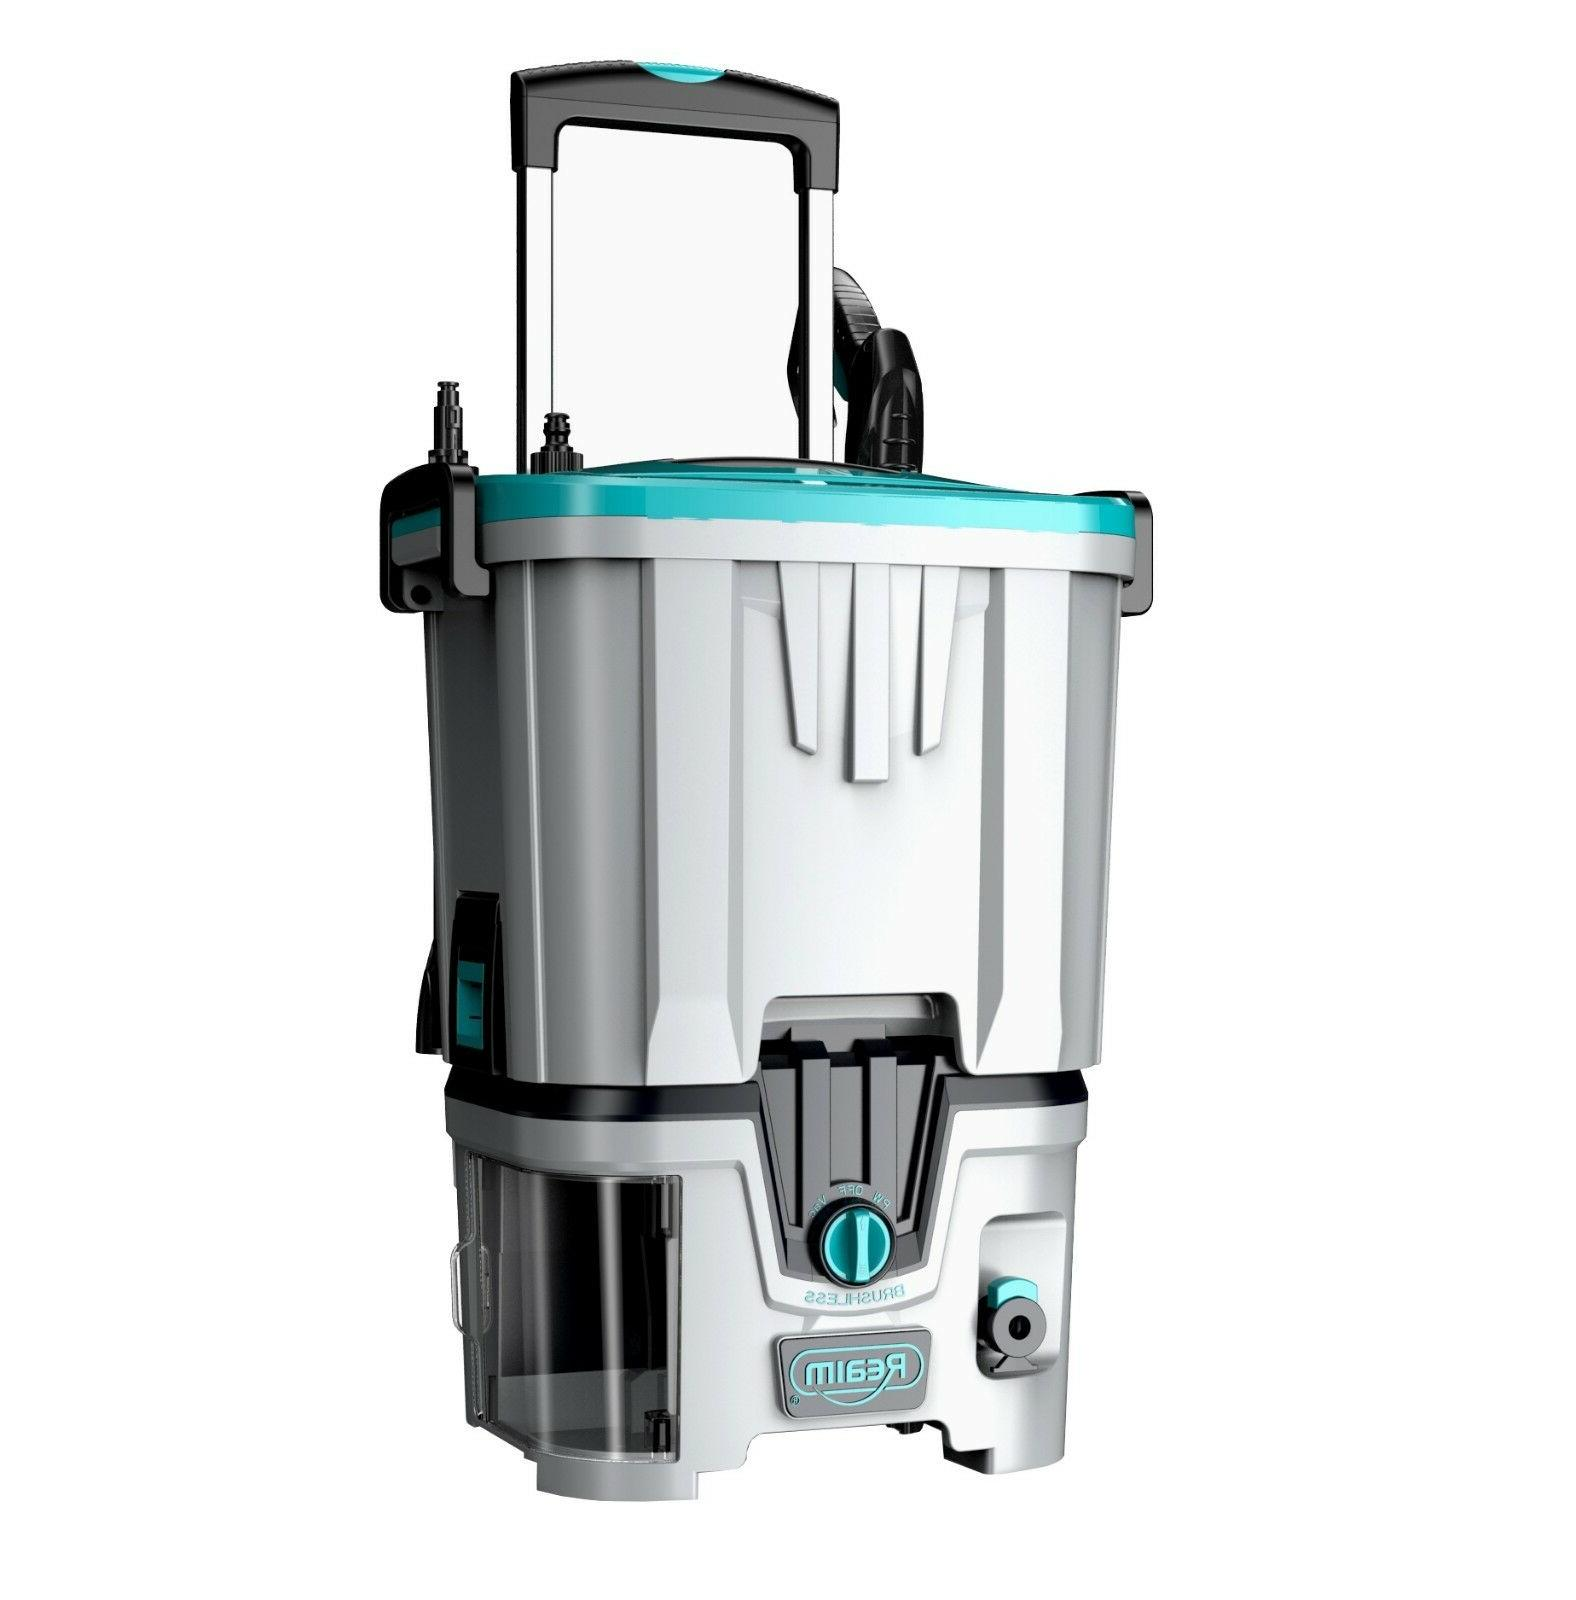 Realm 4.0 Ah PSI 1.5 GPM Cordless Washer